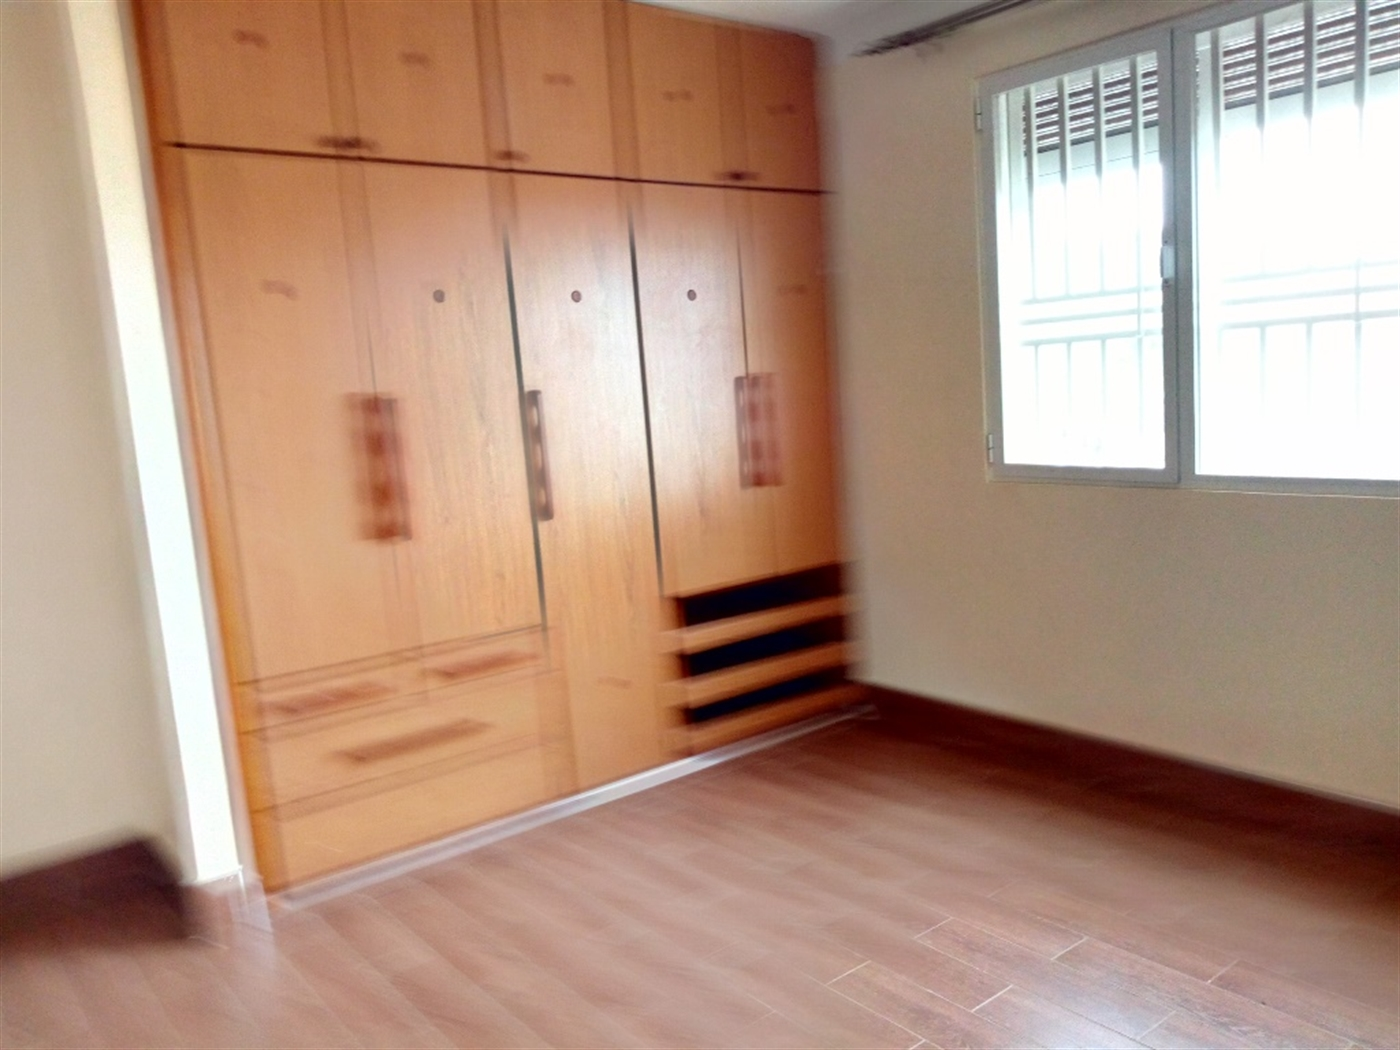 Apartment block for rent in Munyonyo Kampala